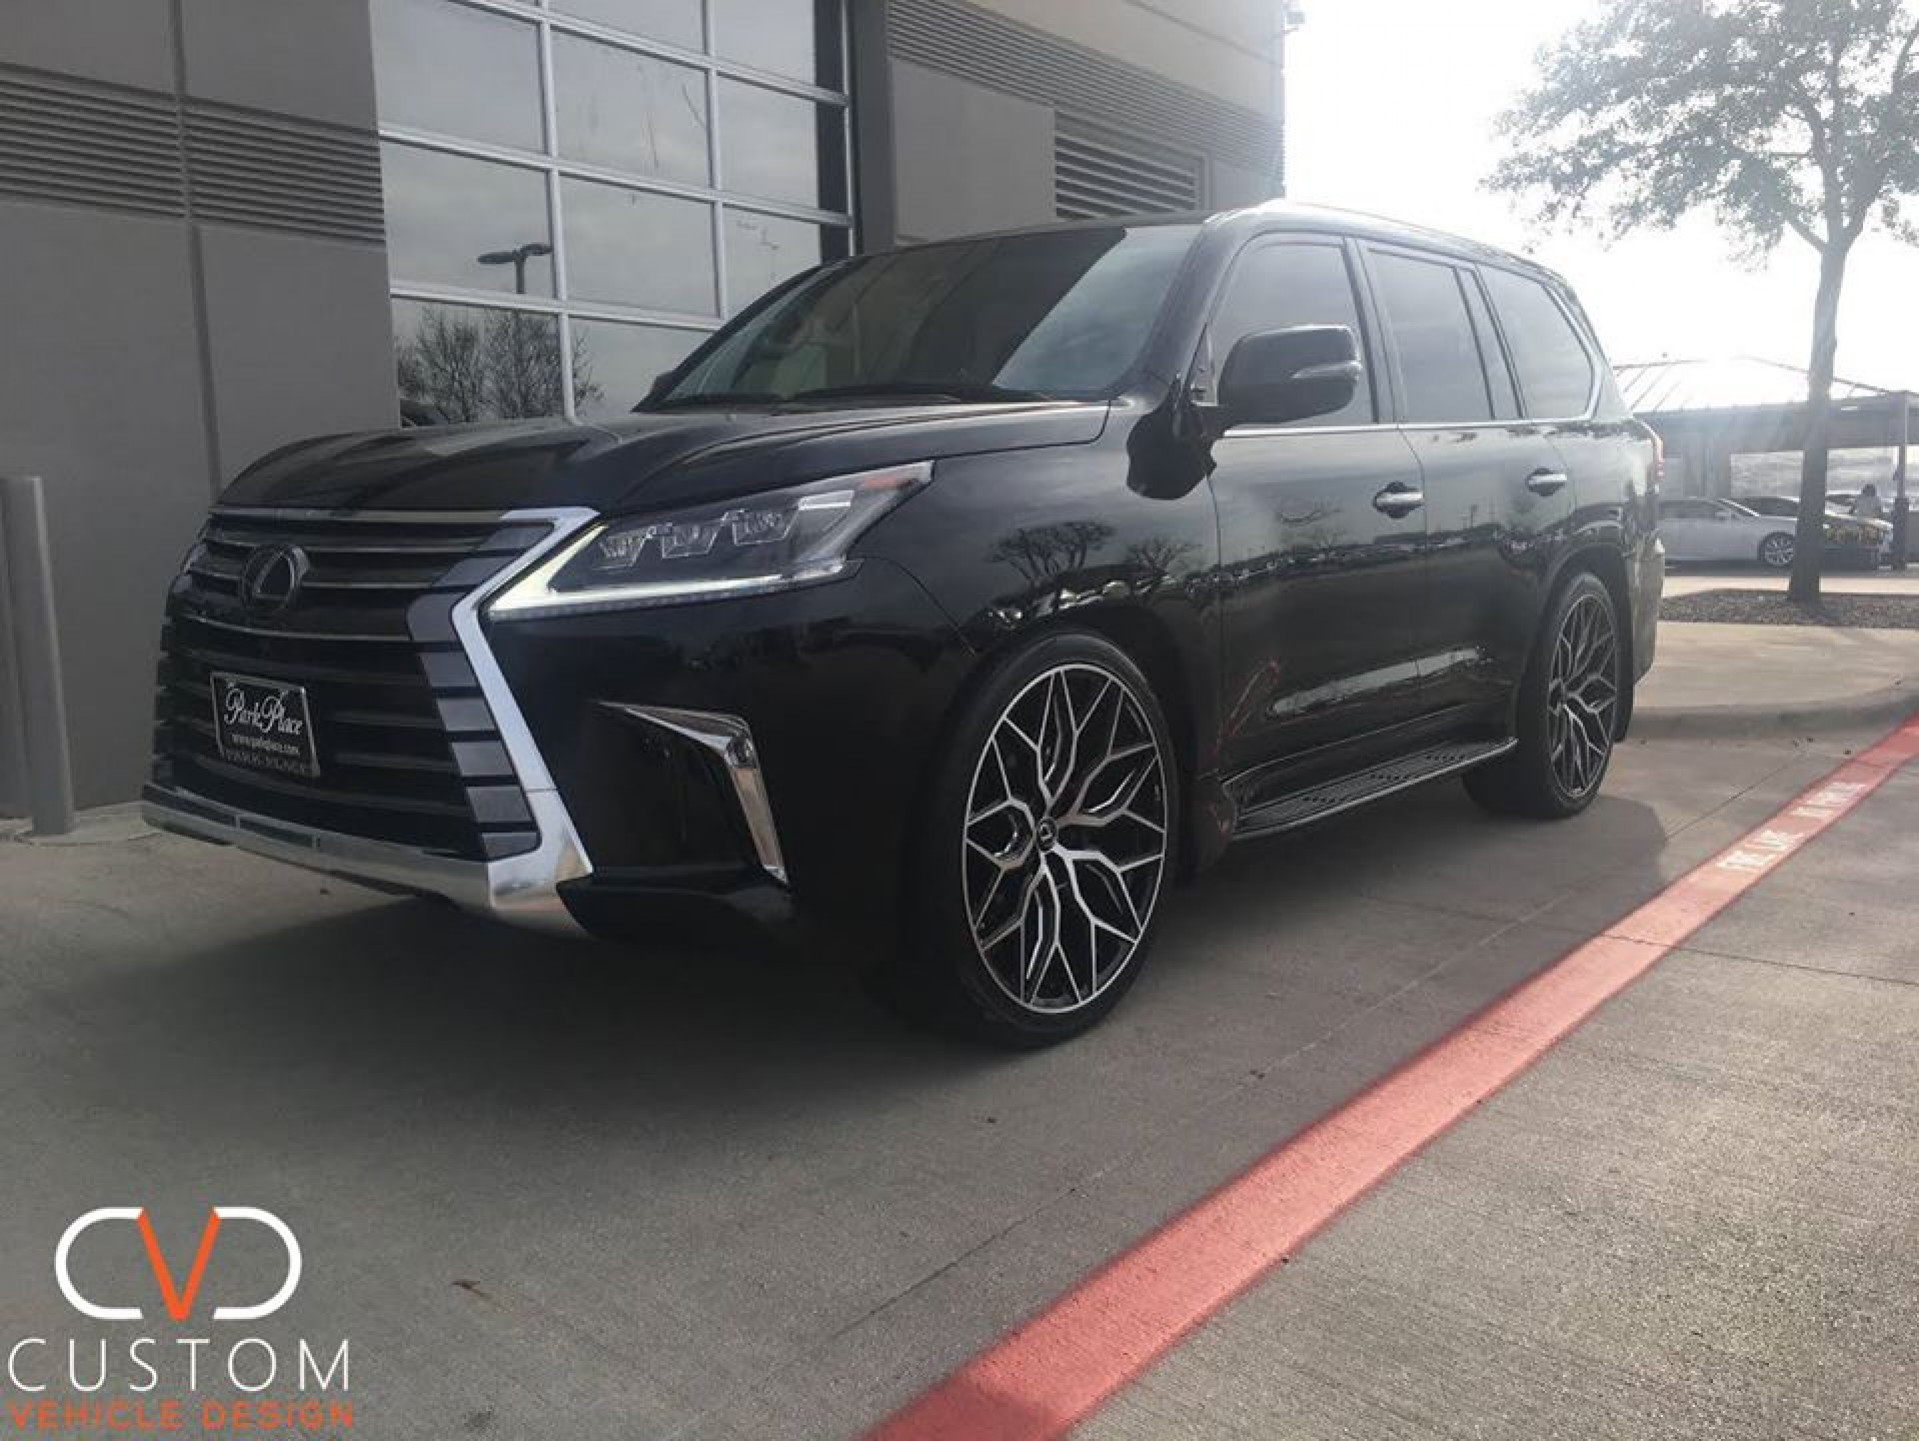 "2020 Lexus LX570 with 24"" Vossen HF2 wheels in gloss black ⠀"